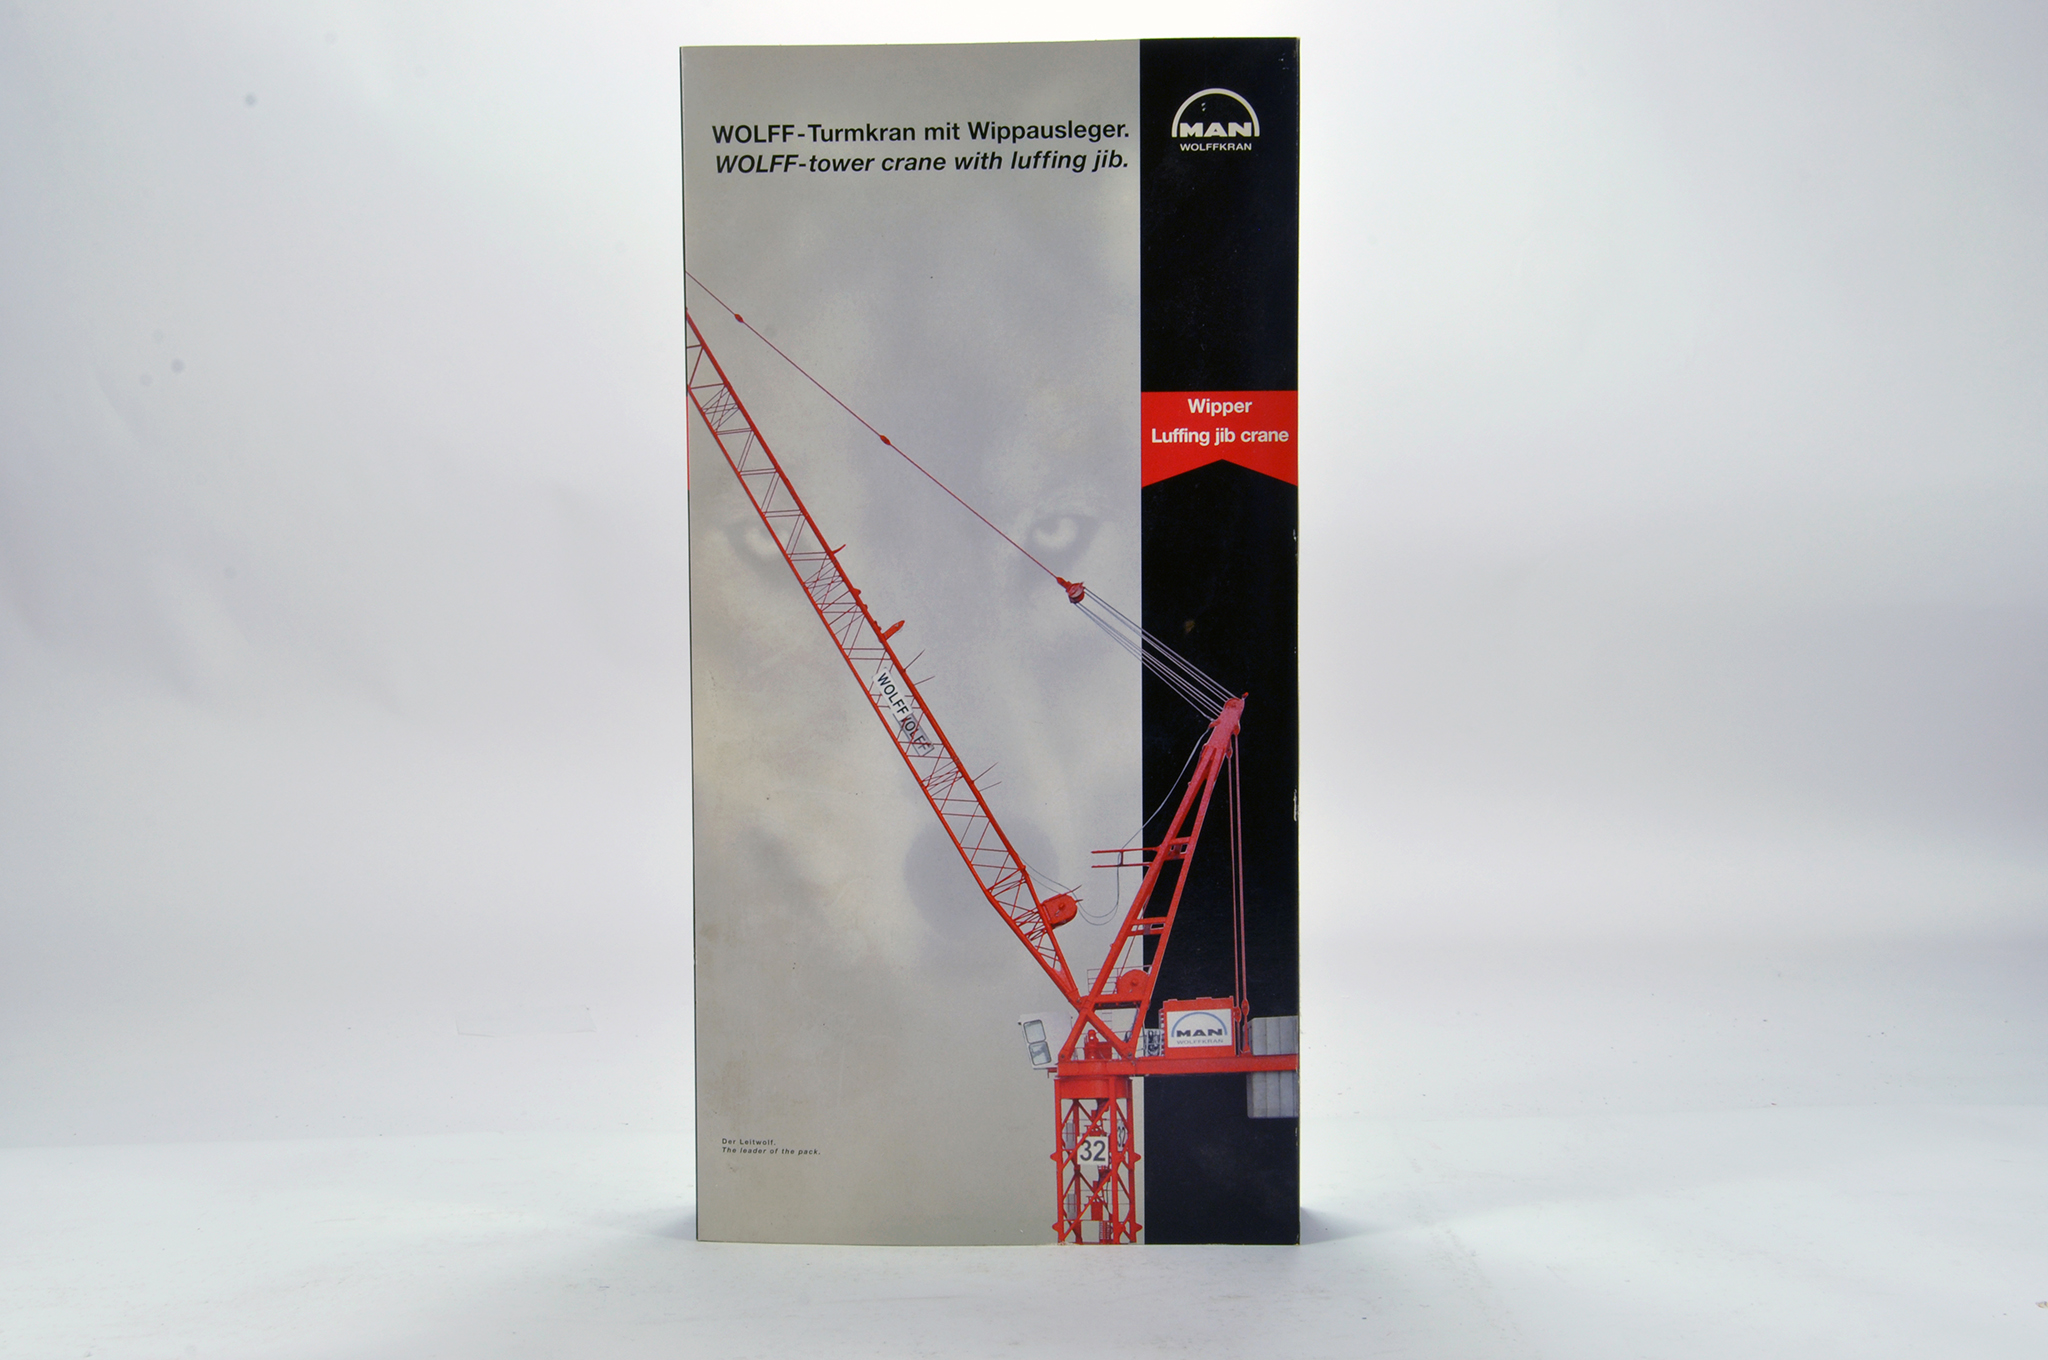 Lot 355 - Conrad 1/87 construction issue comprising MAN Wolfkran Luffing Jib Tower Crane. E to NM.